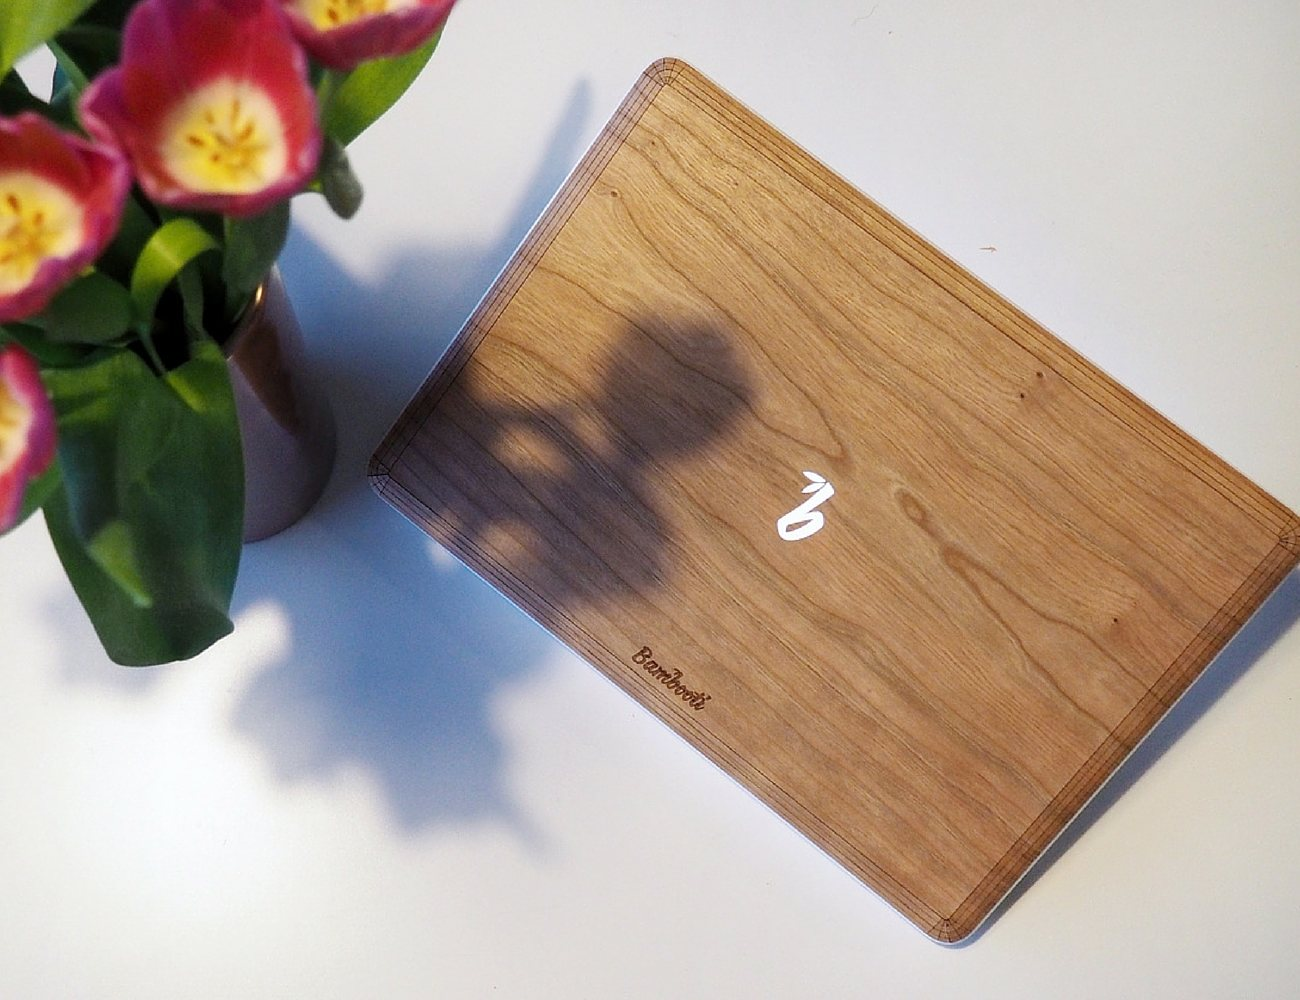 Bambooti+%E2%80%93+The+Wooden+Back+For+MacBook